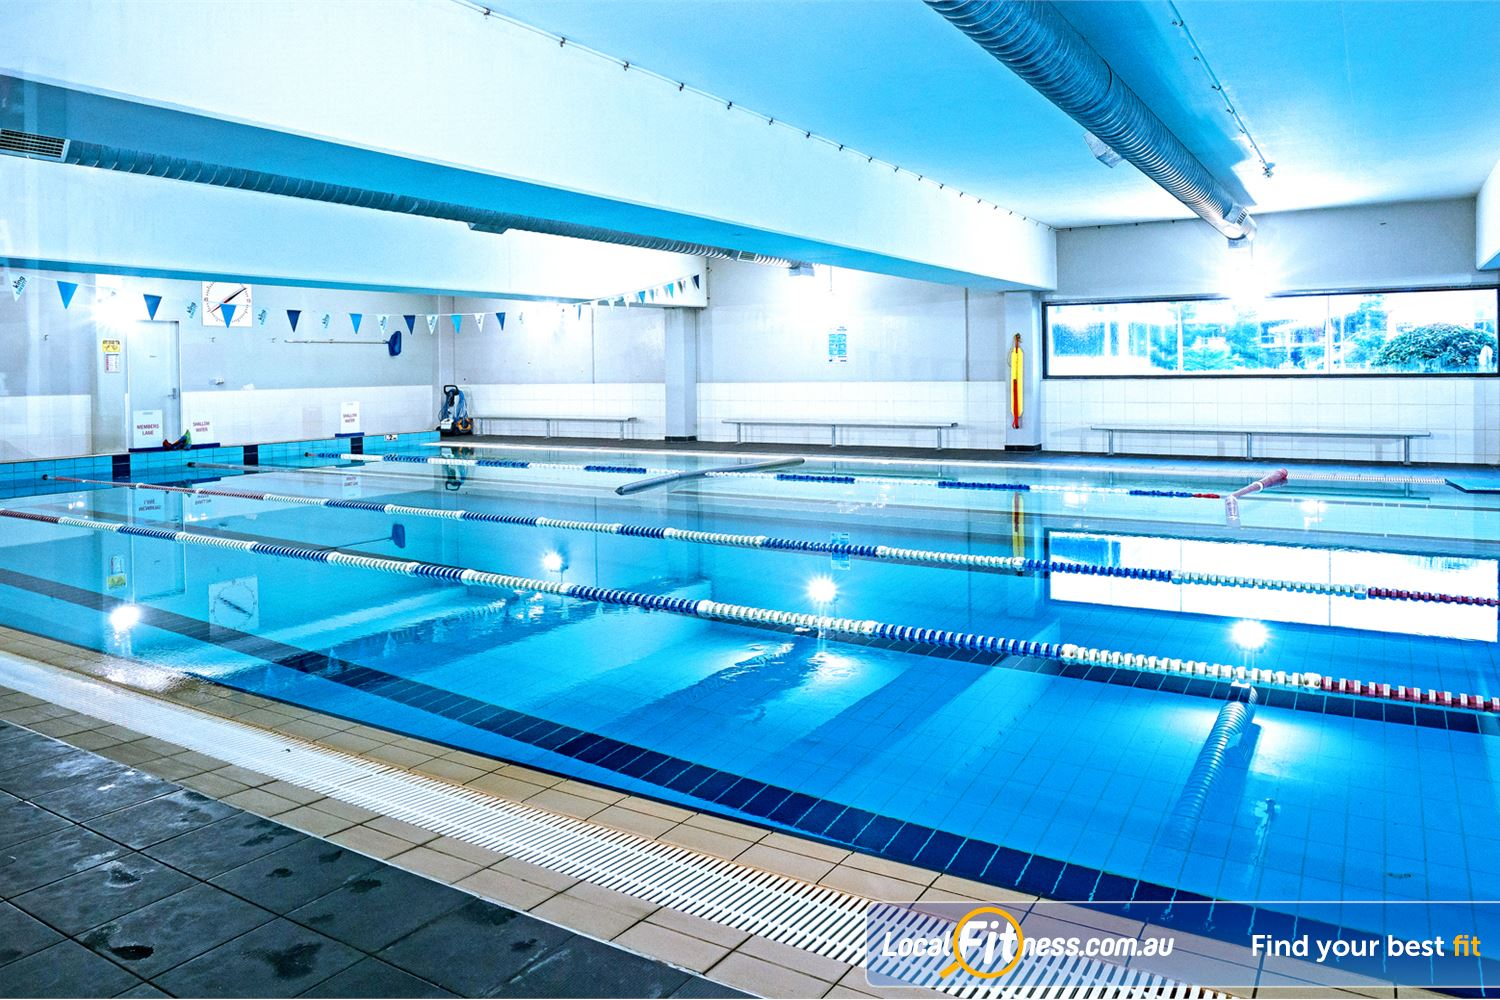 Fitness first robina gym free 1 day trial free 1 day trial - Fitness first swimming pool singapore ...